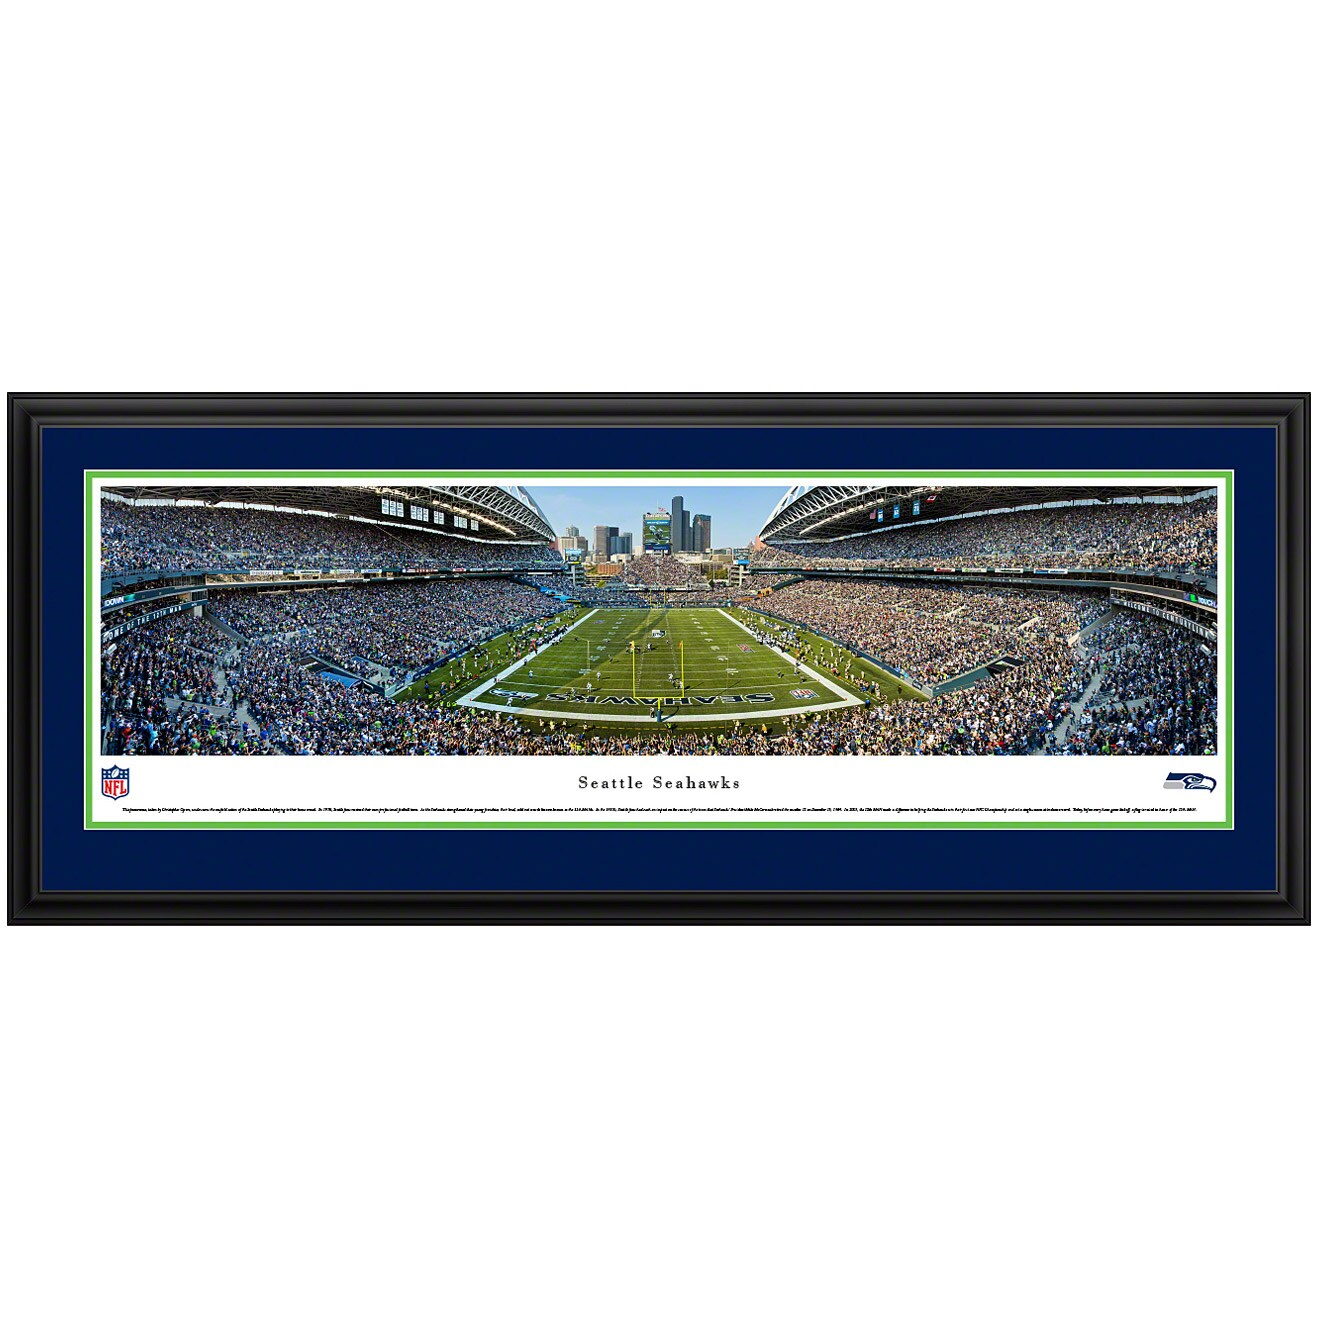 "Seattle Seahawks 44"" x 18"" Deluxe Frame Panoramic Photo"